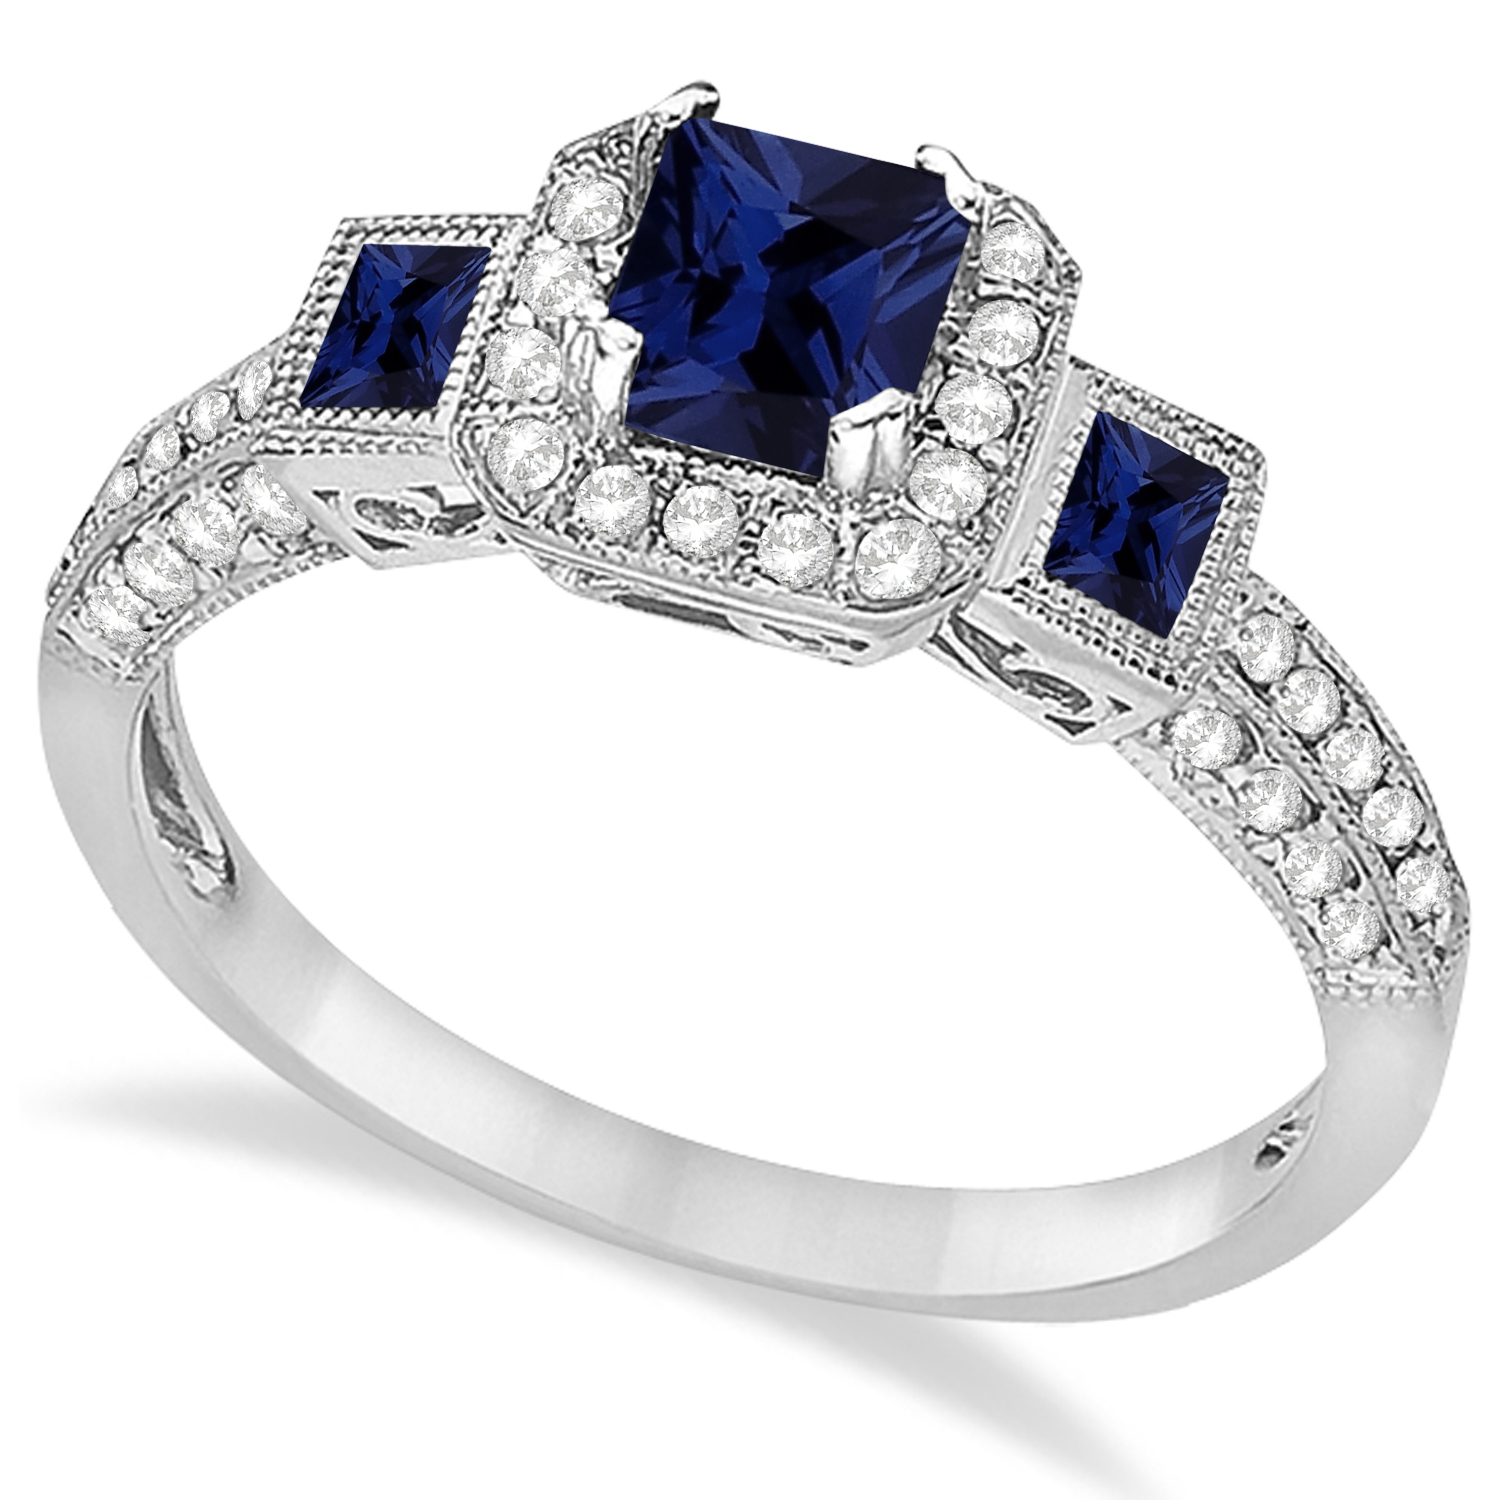 Blue Sapphire & Diamond Engagement Ring 14k White Gold 1 35ct